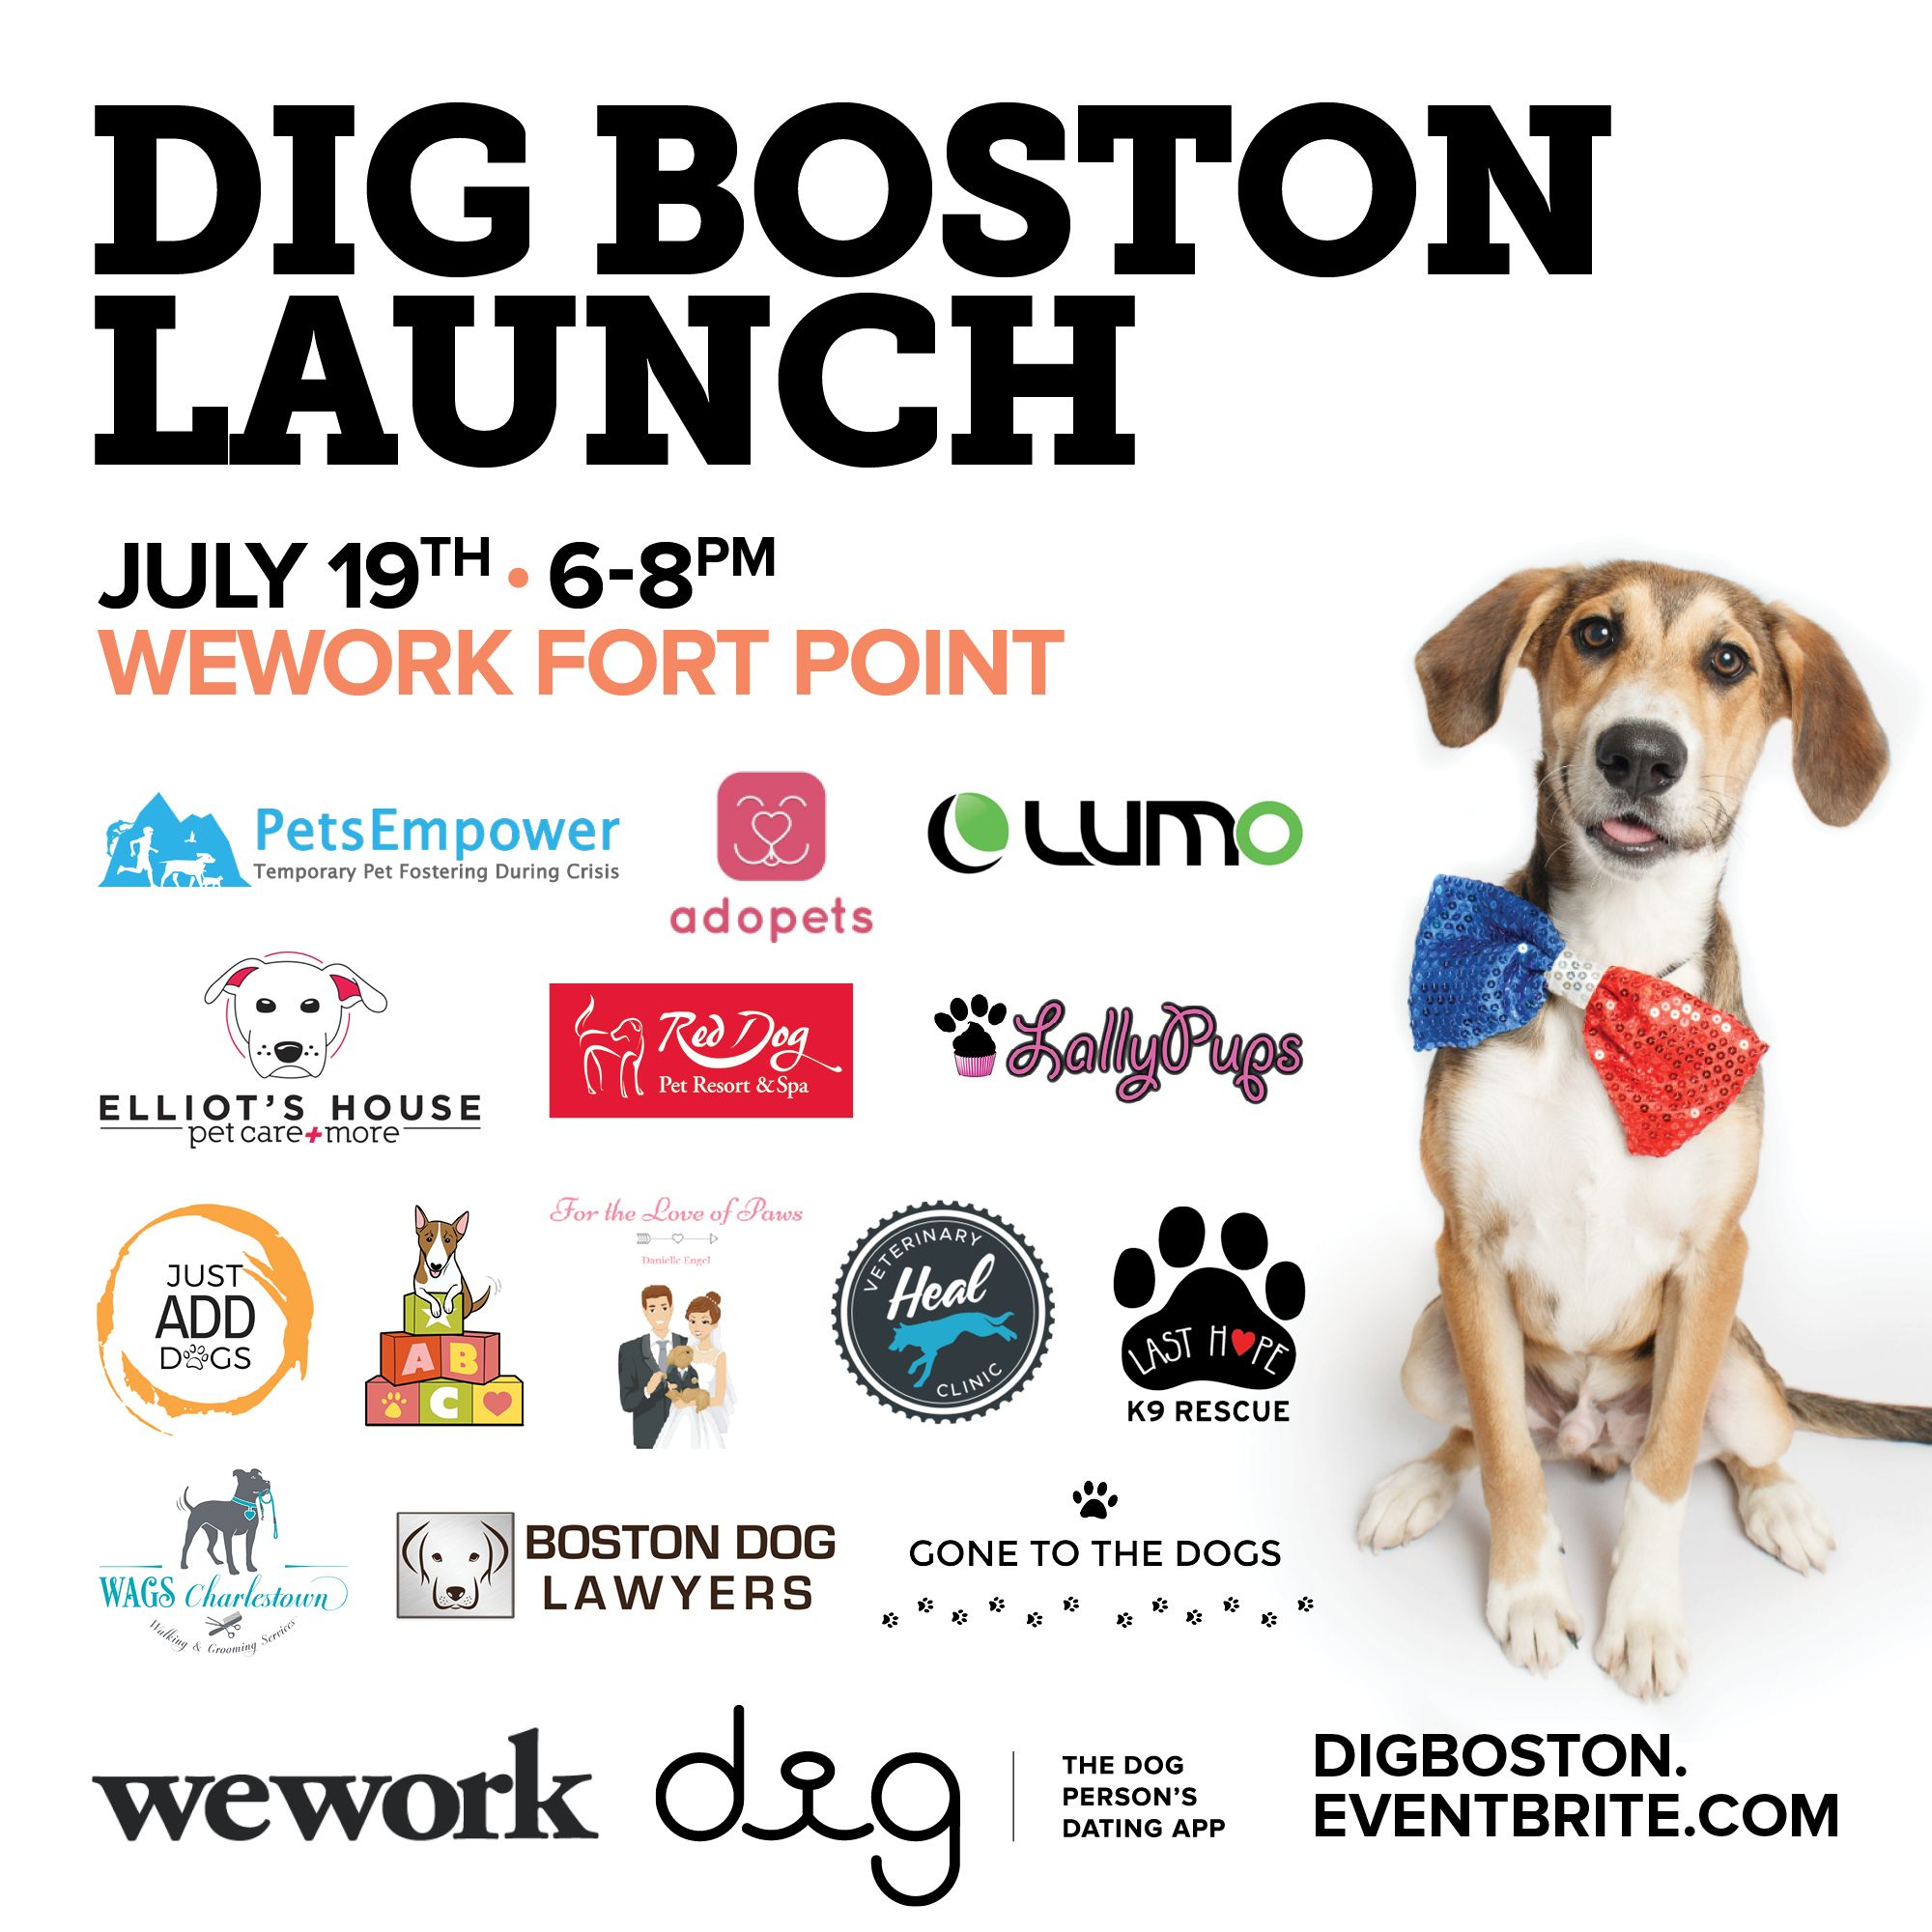 Dig The Dog Person's Dating App is officially launching